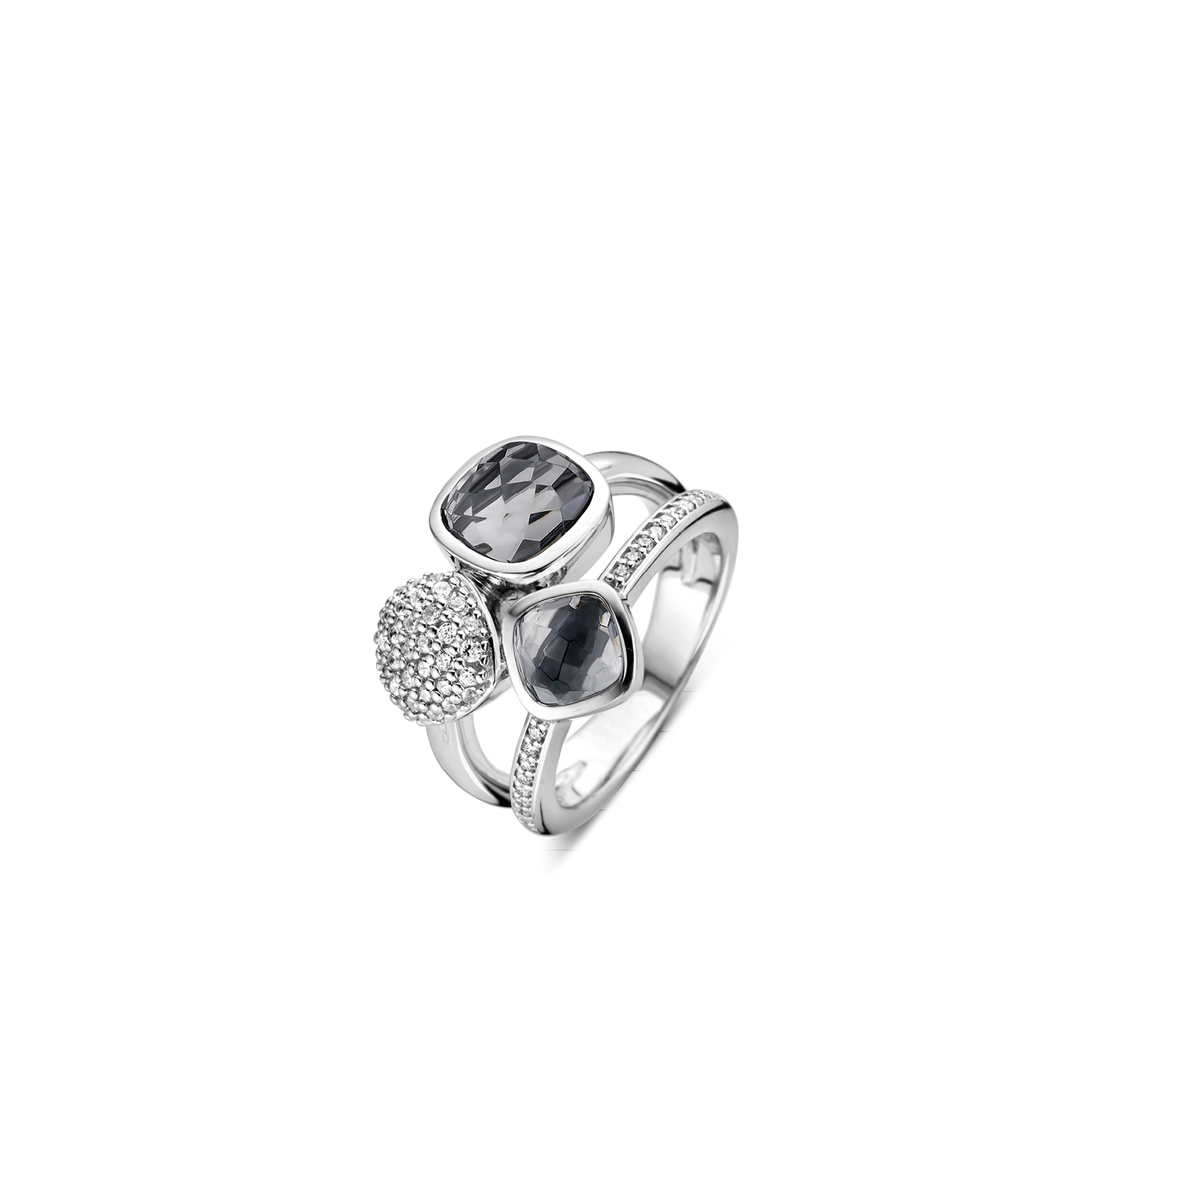 TI SENTO - Milano Ring 12182GB